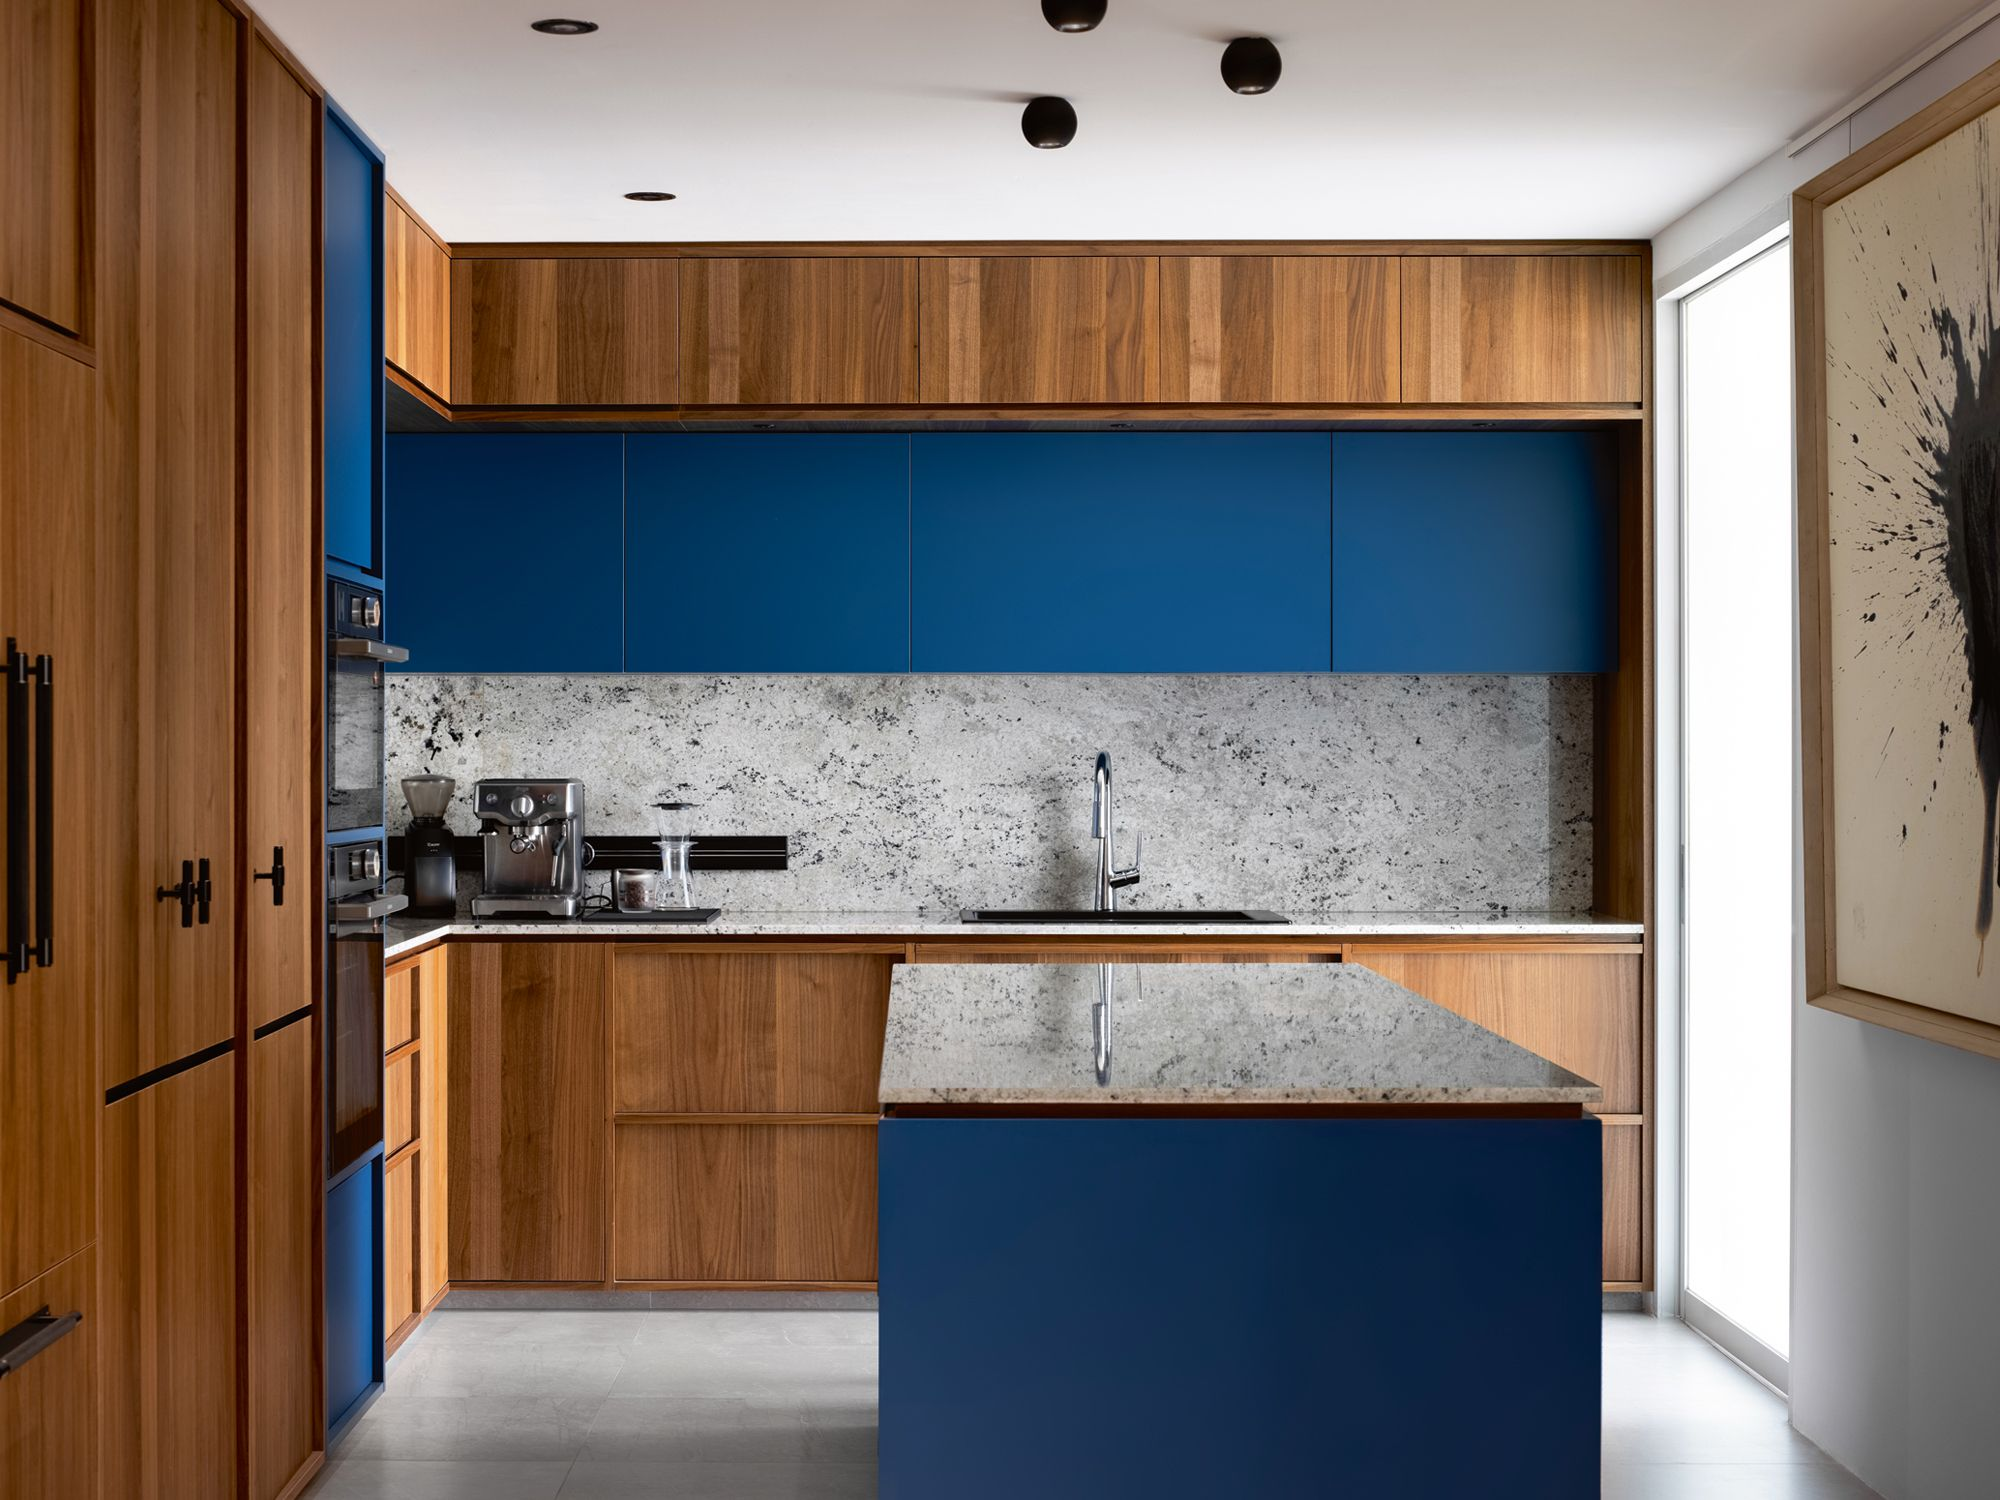 Blue cabinetry and the rugged texture of the backsplash make the kitchen pop